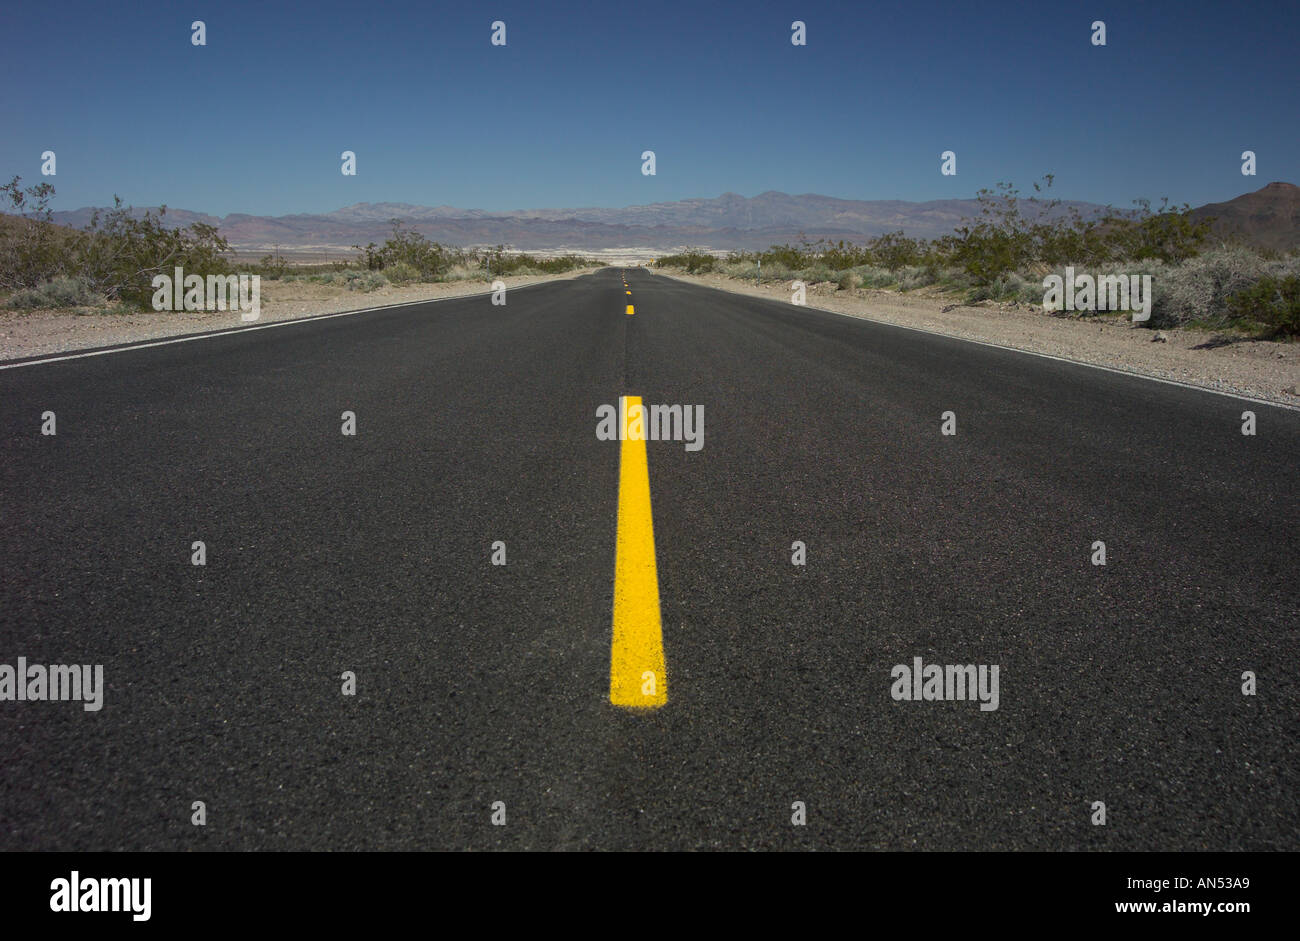 The wide open road - Stock Image